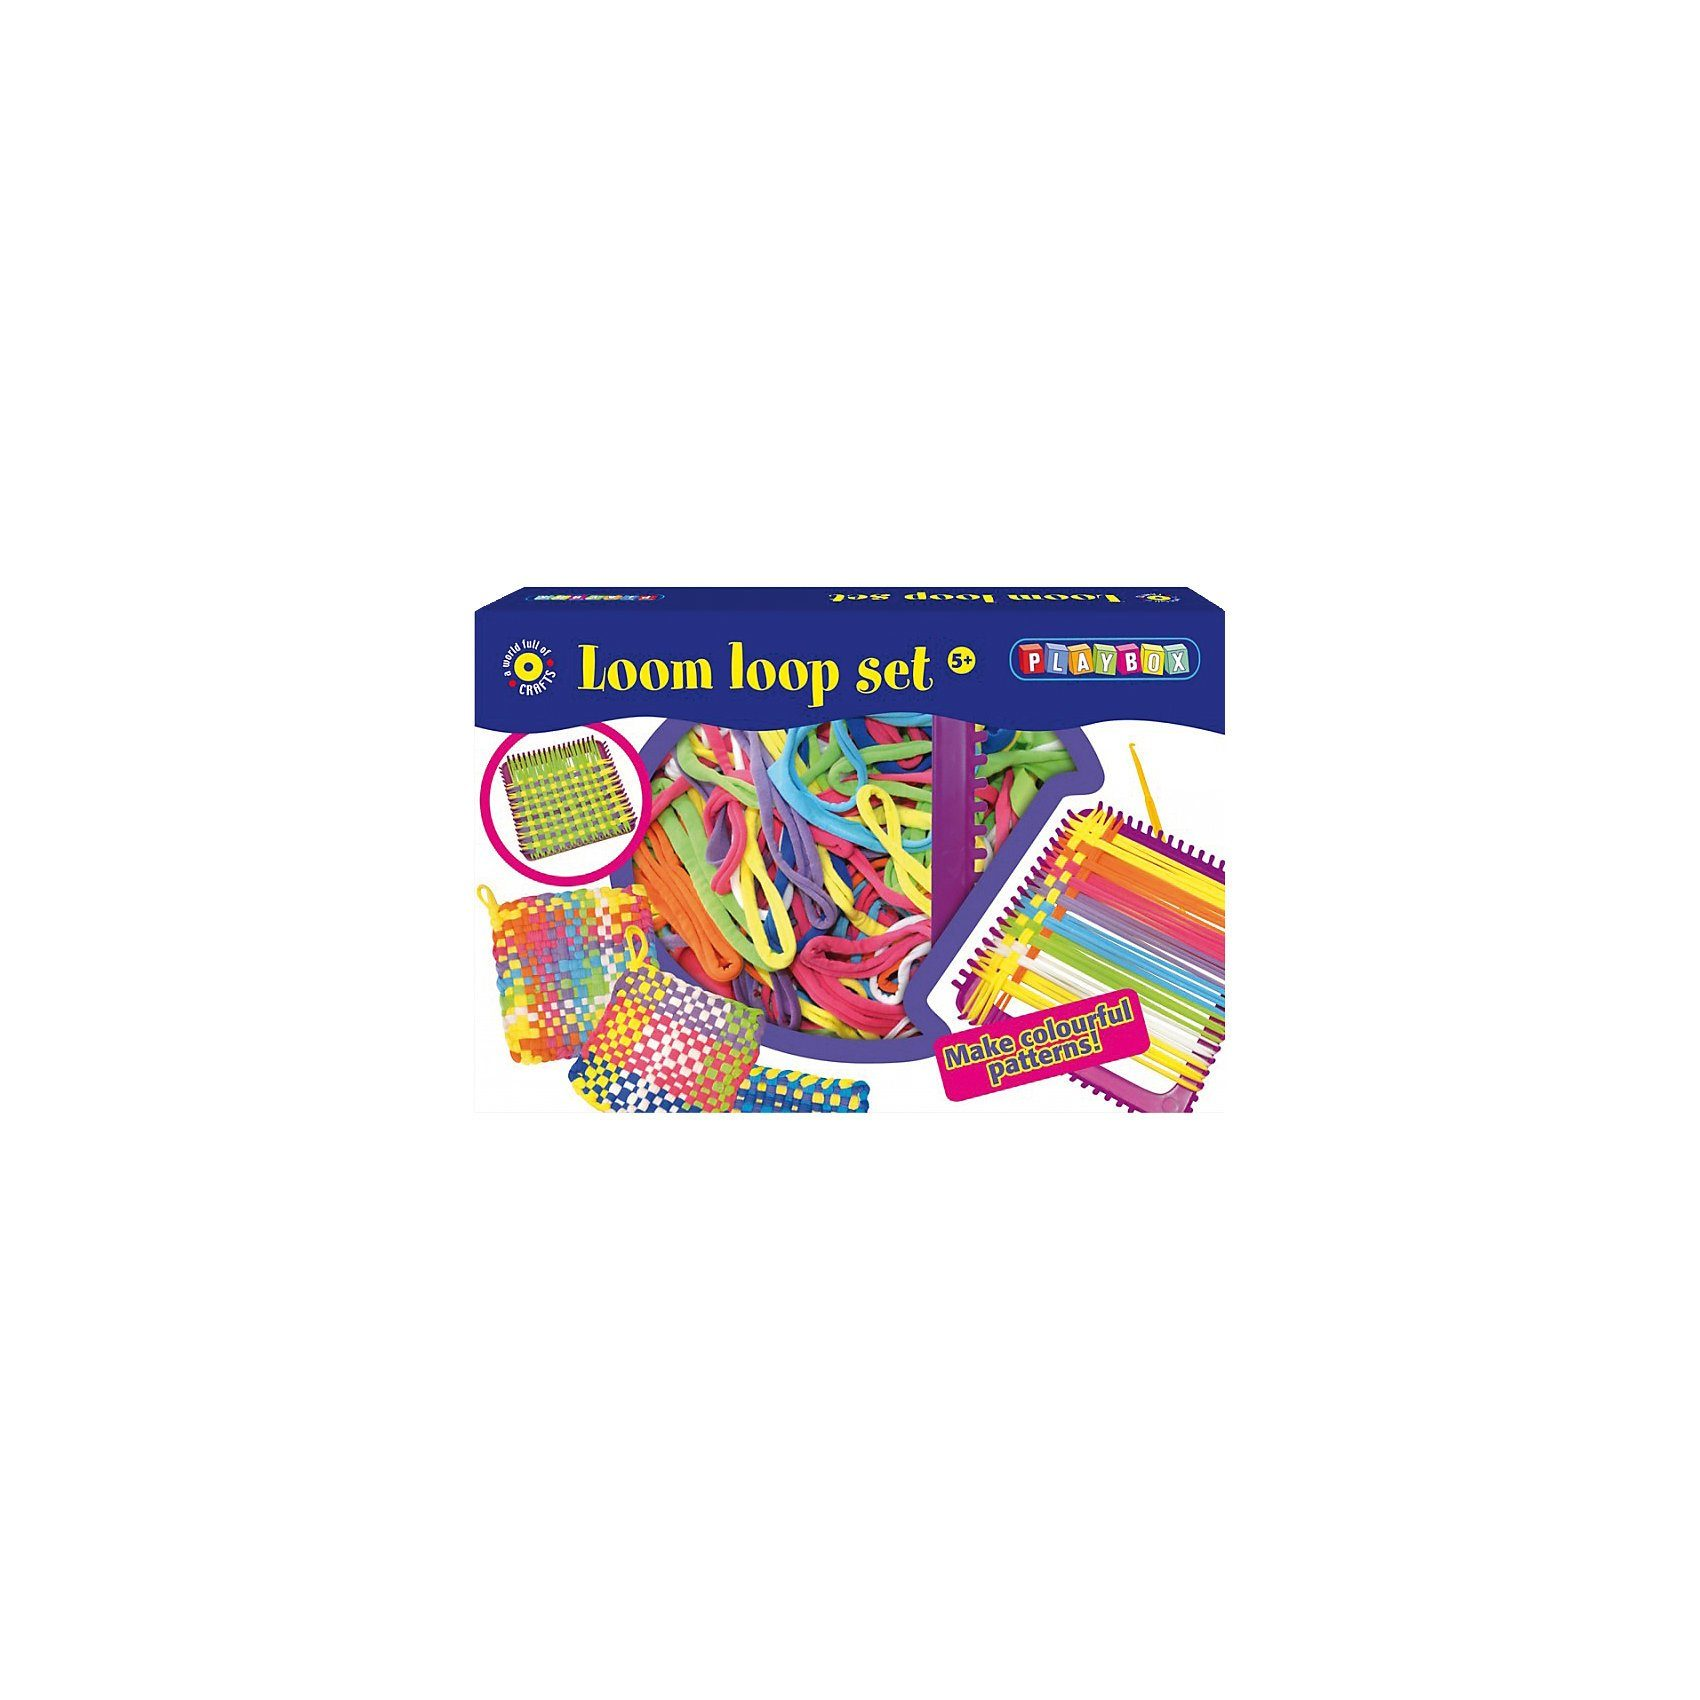 Playbox Webrahmen Loom Loops